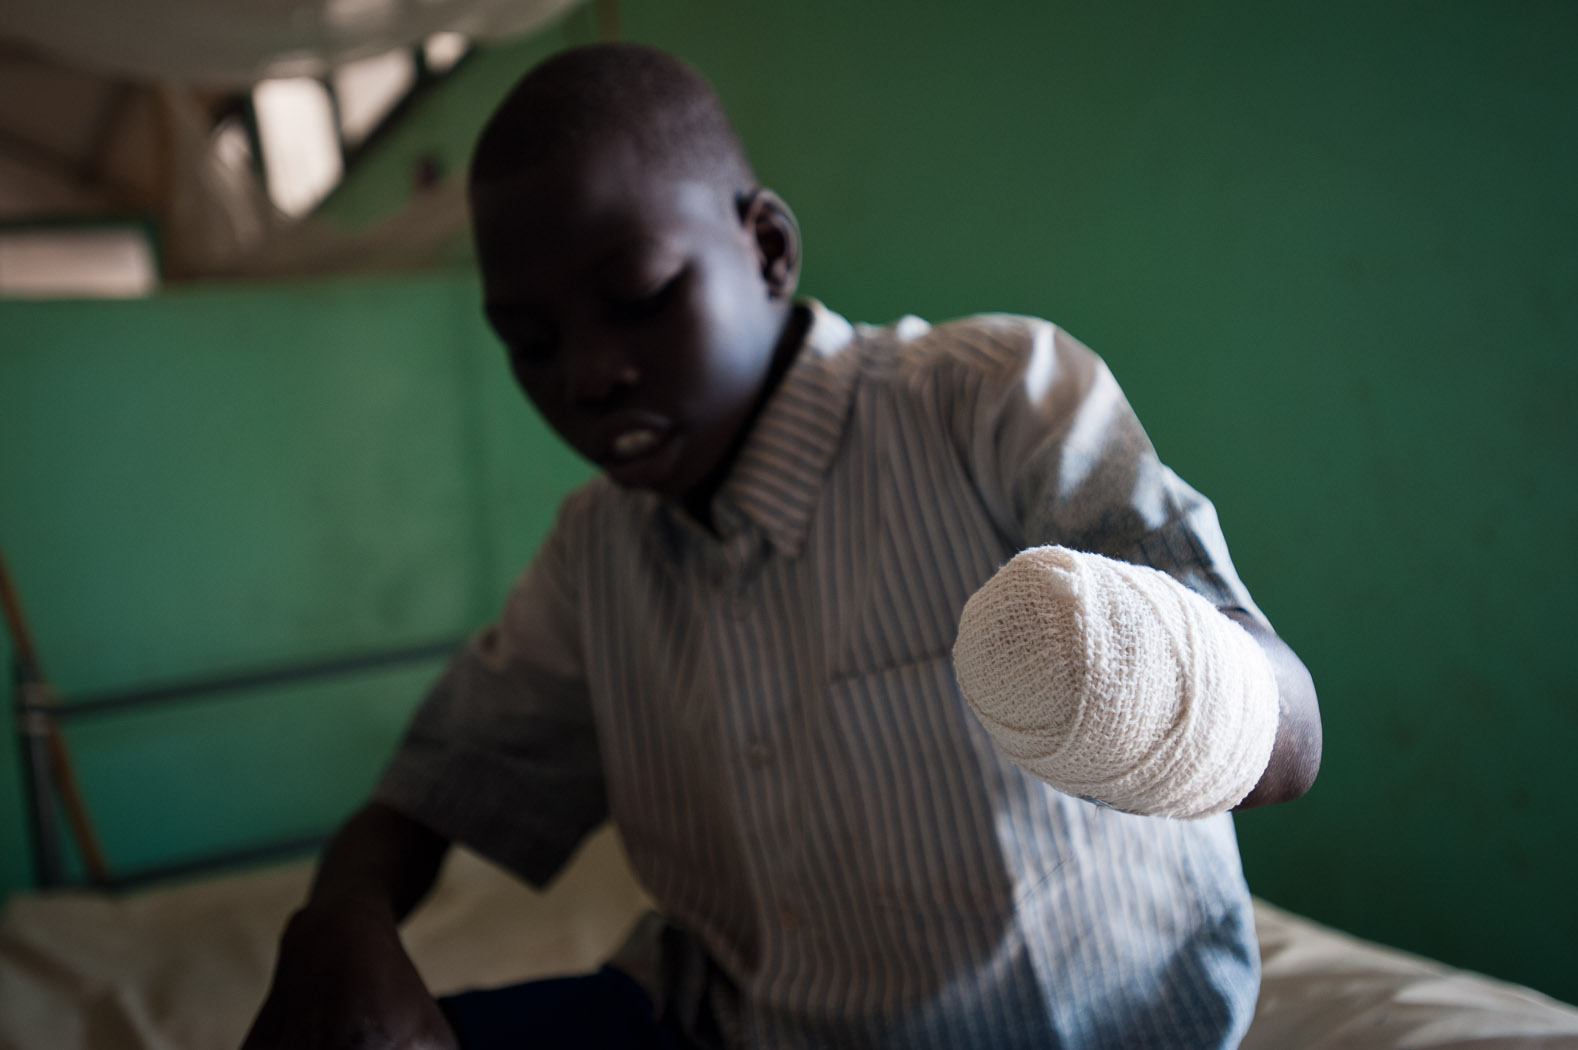 """Jacomo Tia Jibril (4) lost his hand and half of his forearm as a result of the bombing of his village of Kurchi by Sudanese Armed Forces fifteen days previously. He was washing clothes at the only borehole in the village when the bombing occurred. After fleeing from the sound of the aircraft, Jacomo says """"immediately after, I found my hand hanging off"""", which later had to be amputated in the facility."""